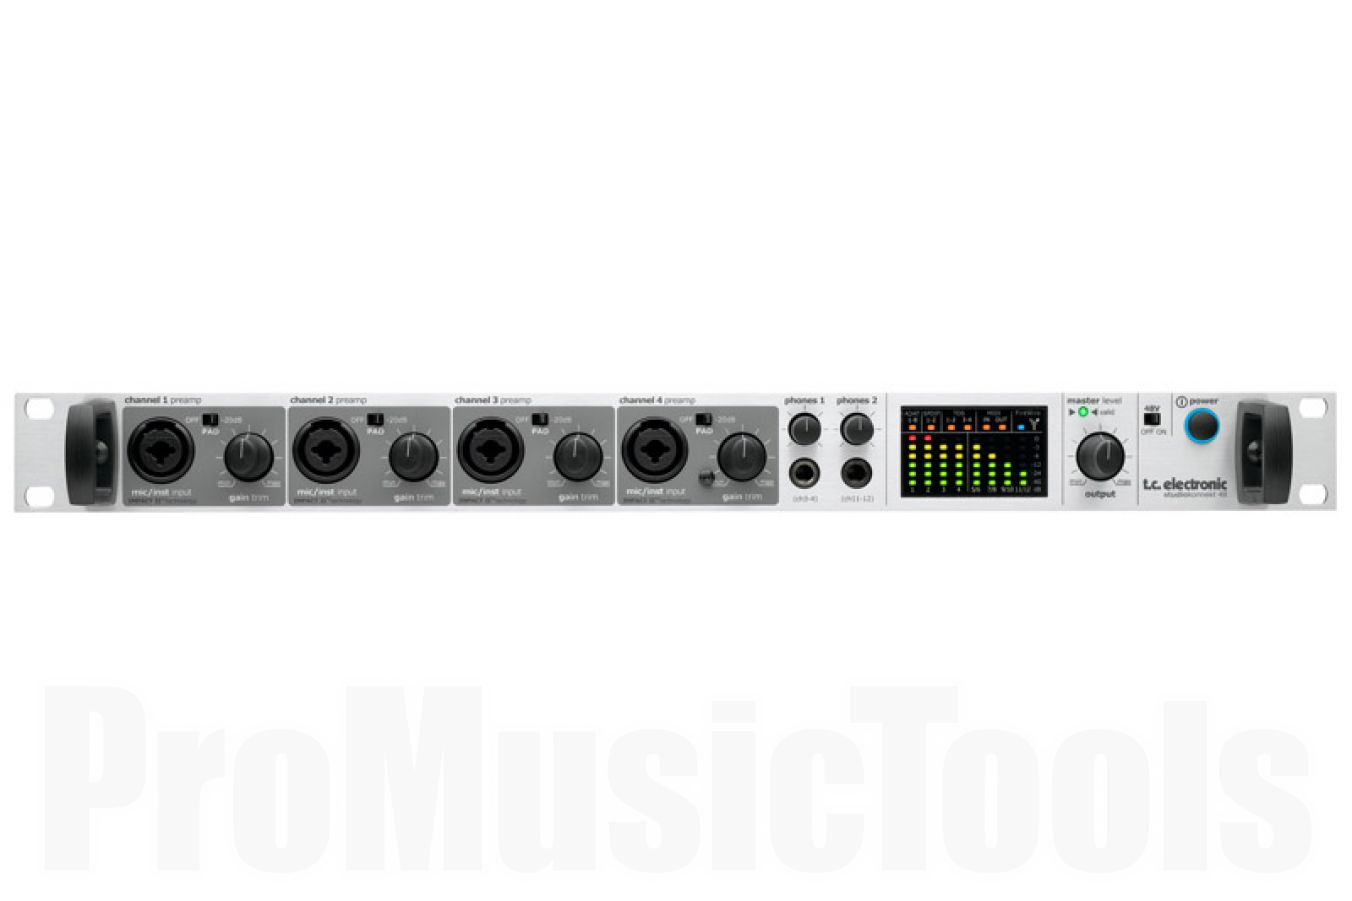 TC Electronic Studio Konnekt 48 incl. Remote